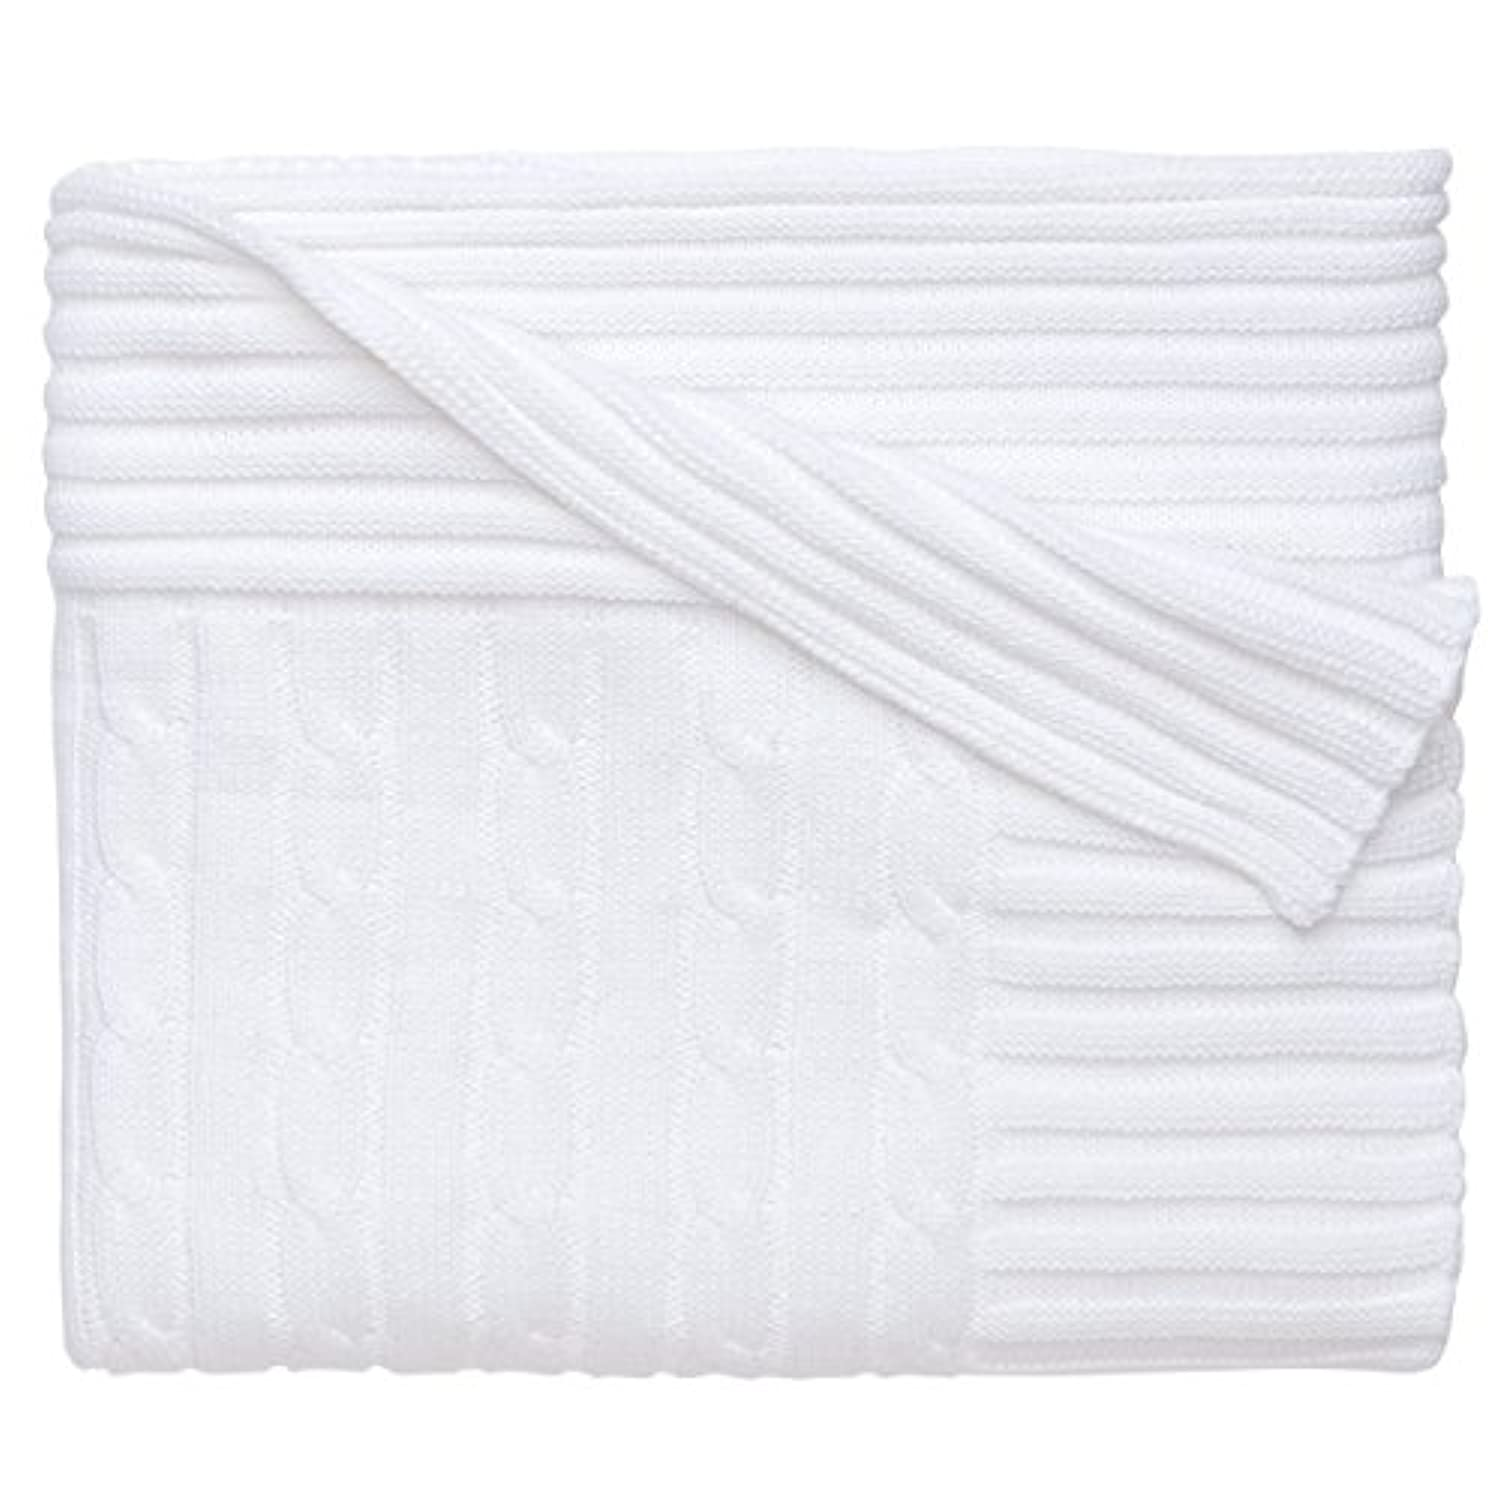 Elegant Baby 100% Cotton, Wide Cable Knit Blanket with Wide Ribbed Border 36 x 45 Inch in White by Elegant Baby [並行輸入品]